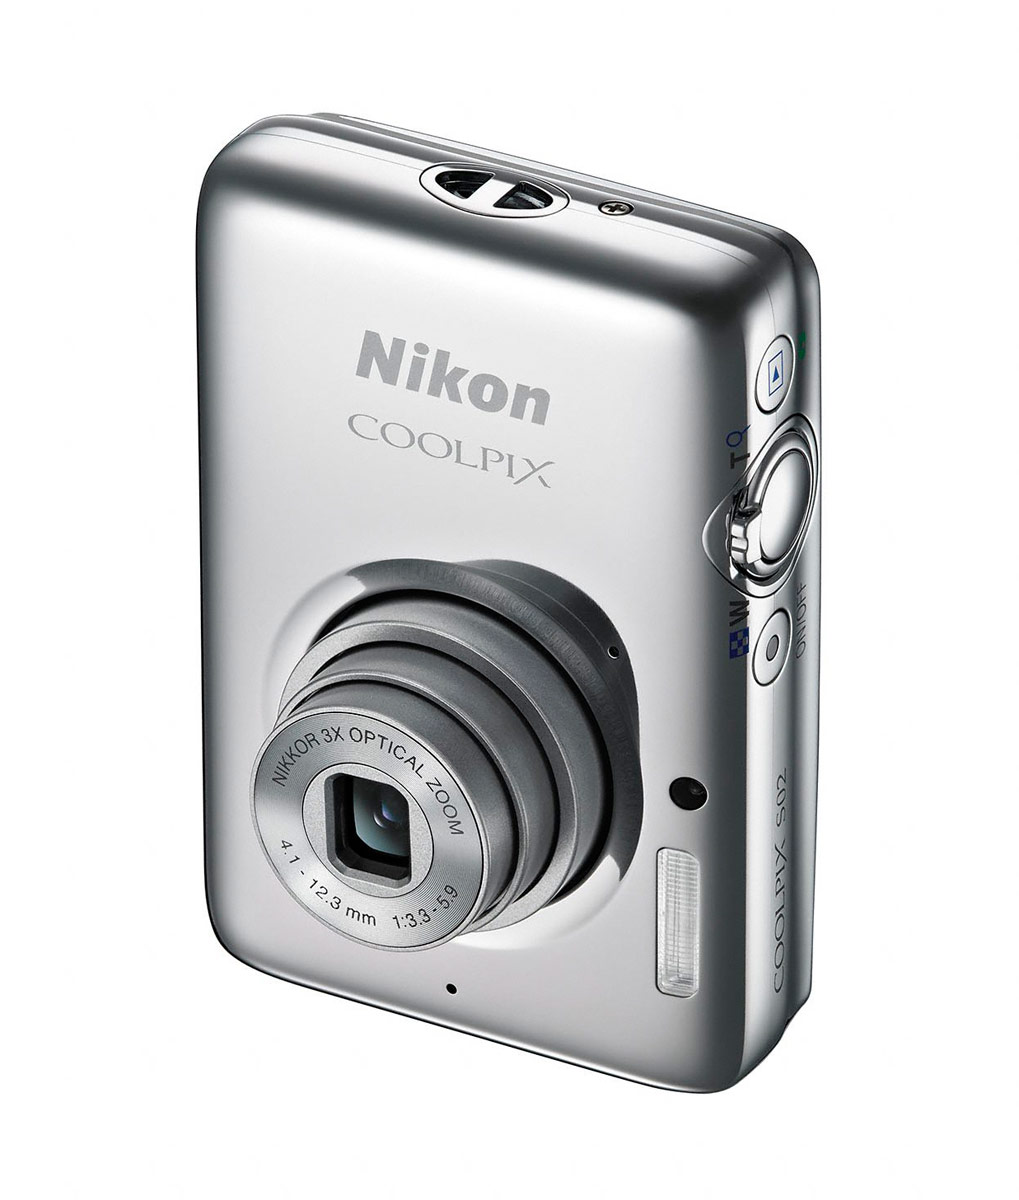 Nikon Coolpix S02 - Silver - Vertical Angle View